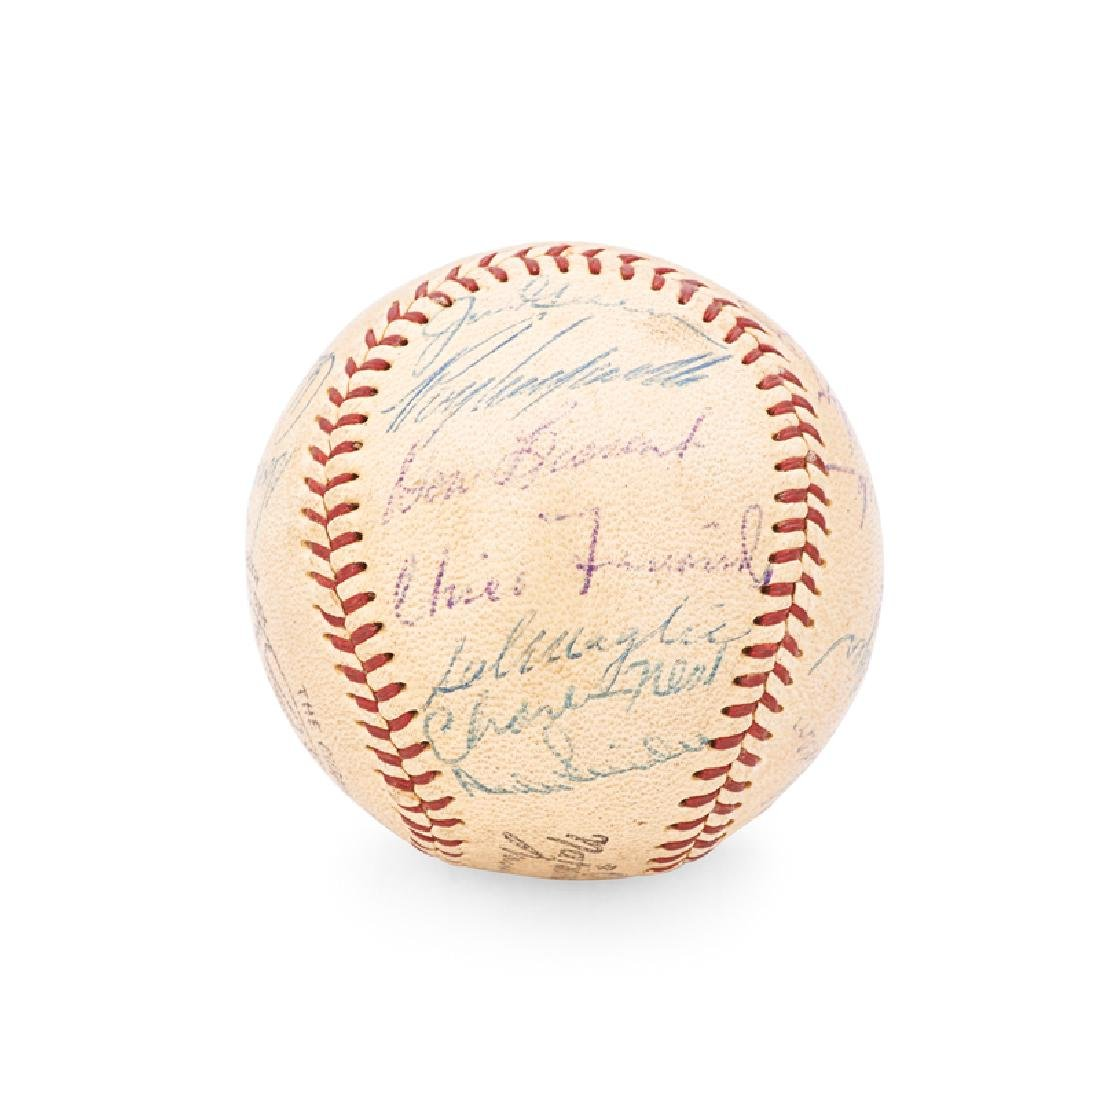 1956 BROOKLYN DODGERS SIGNED BASEBALL - 3